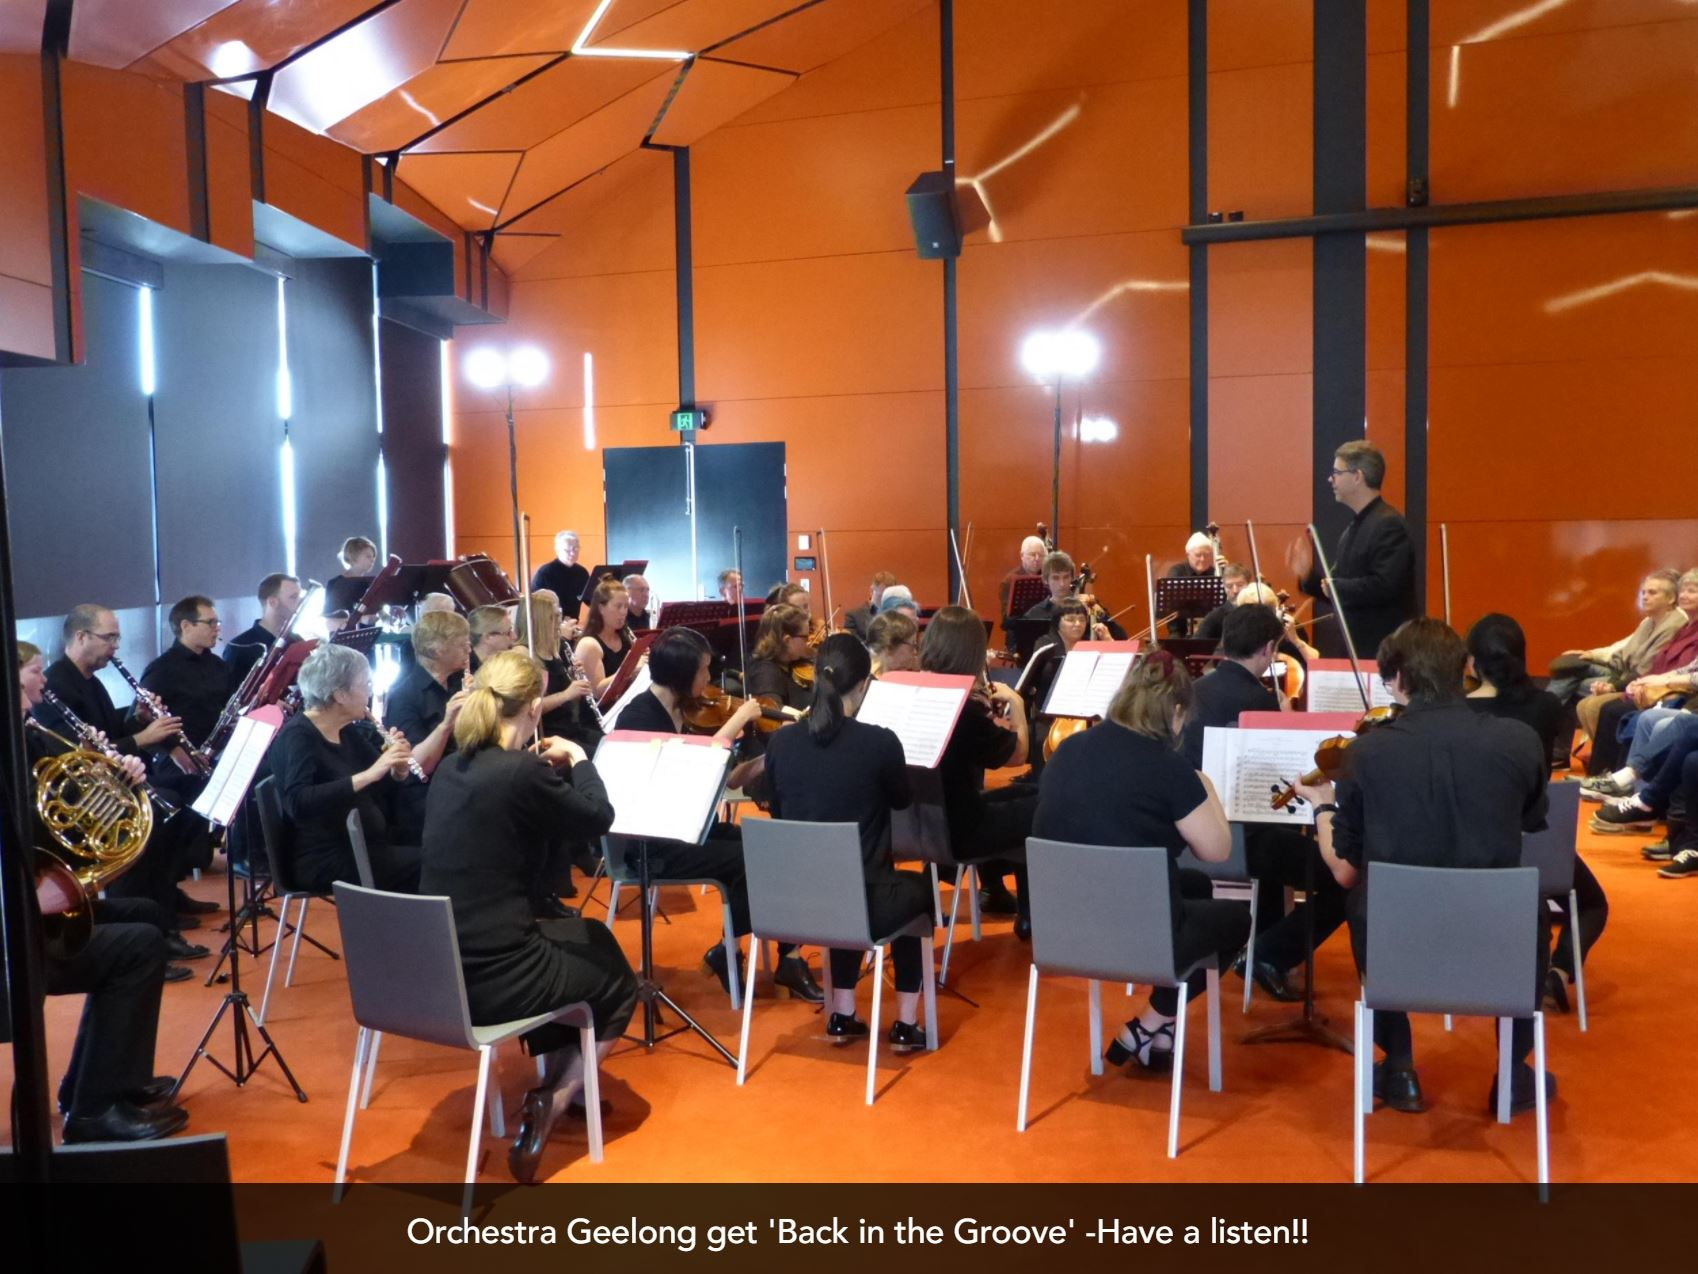 Geelong Orchestra - Back in the Groove